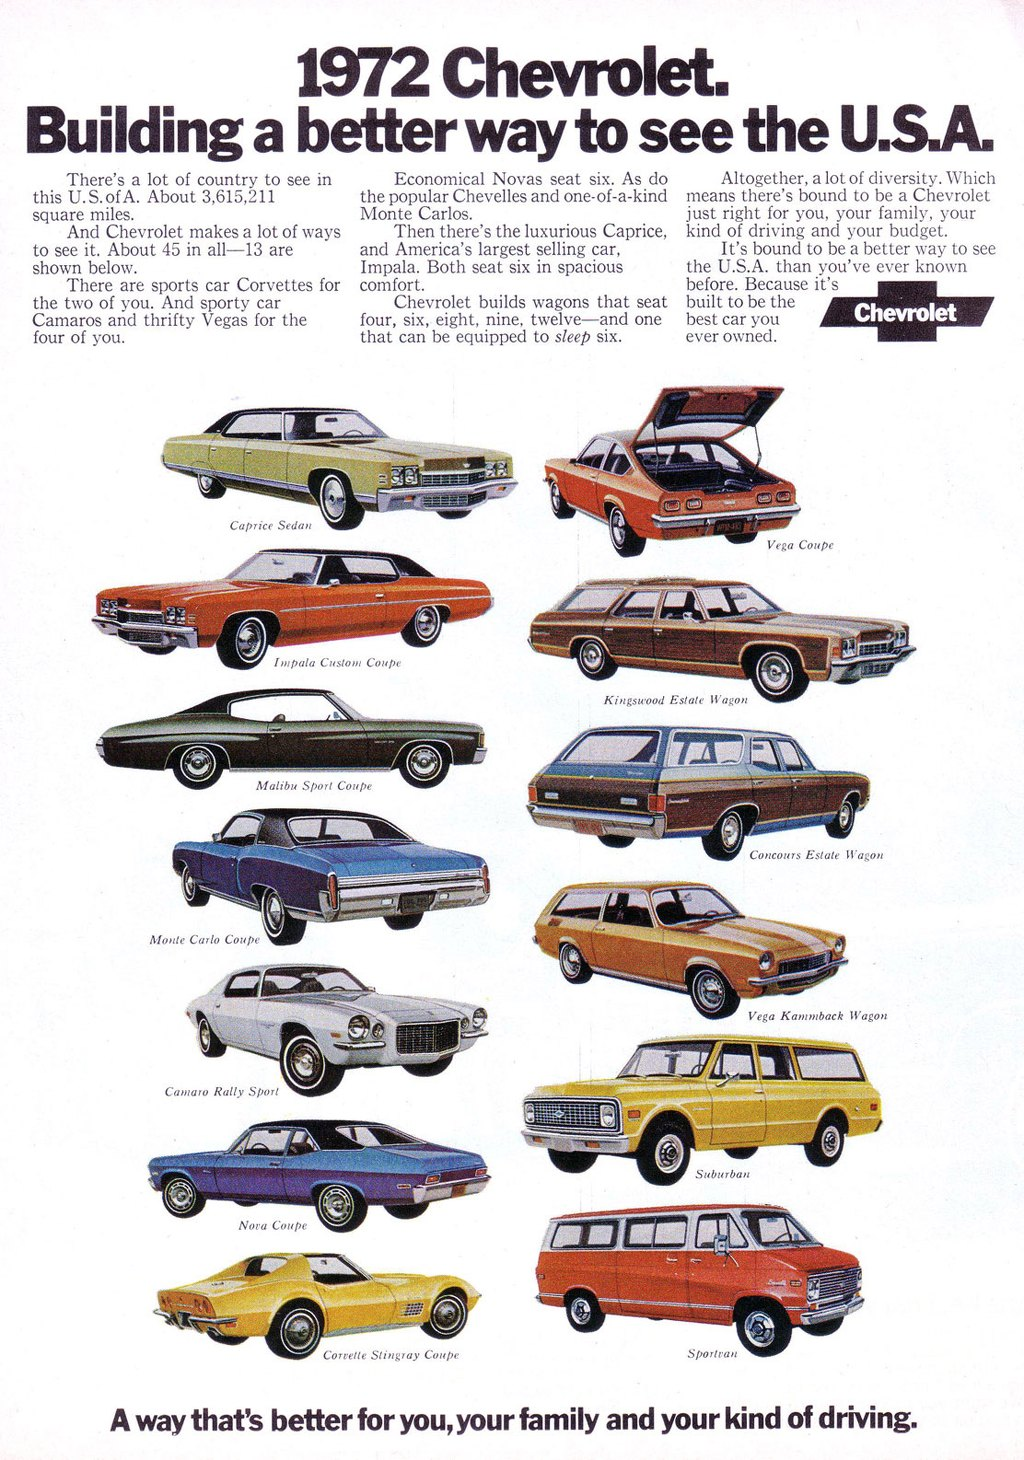 1972 Chevrolet. Building a better way to see the U.S.A.  There's a lot of country to see in this U.S. of A. About 3,615,211 square miles. And Chevrolet makes a lot of ways to see it. About 45 in all-13 are shown below. There are sports car Corvettes for the two of you. And sporty car Camaros and thrifty Vegas for the four of you.  Economical Novas seat six. As do the popular Chevelles and one-of-a-kind Monte Carlos. Then there's the luxurious Caprice, and America's largest selling car, Impala. Both seat six in spacious comfort. Chevrolet builds wagons that seat four, six, eight, nine, twelve—and one that can be equipped to sleep six.  Altogether, a lot of diversity. Which means there's bound to be a Chevrolet just right for you, your family, your kind of driving and your budget. It's bound to be a better way to see the U.S.A. than you've ever known before. Because it's built to be the best car you ever owned.    Kingwood Estate Wagon   Afalibn Sport Corp,   Monte Carlo Coupe  Vega Kammback Wagon  Camaro Rally Sport  Corvette Stingray coupe   A way that's better for you, your family and your kind of driving.